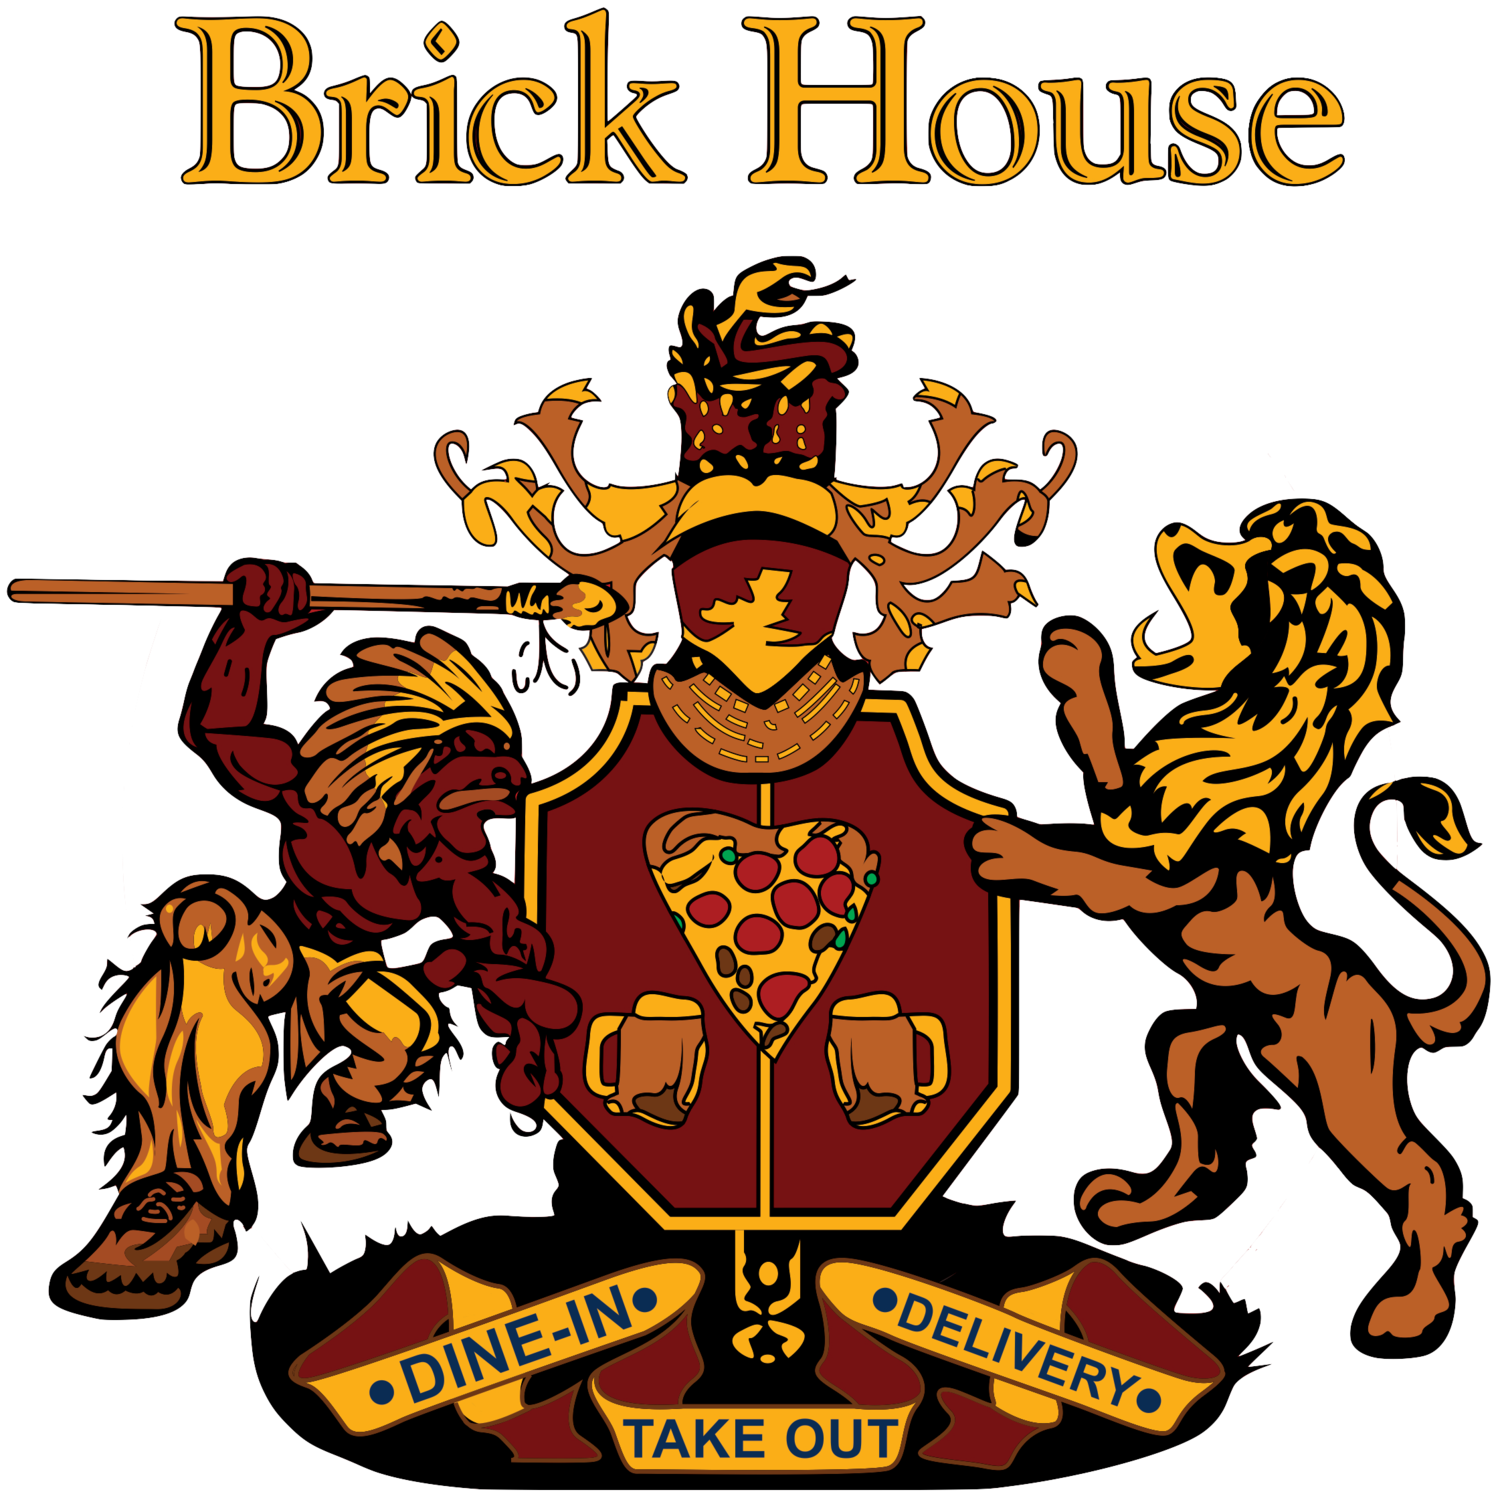 Brick House Restaurant & Bar